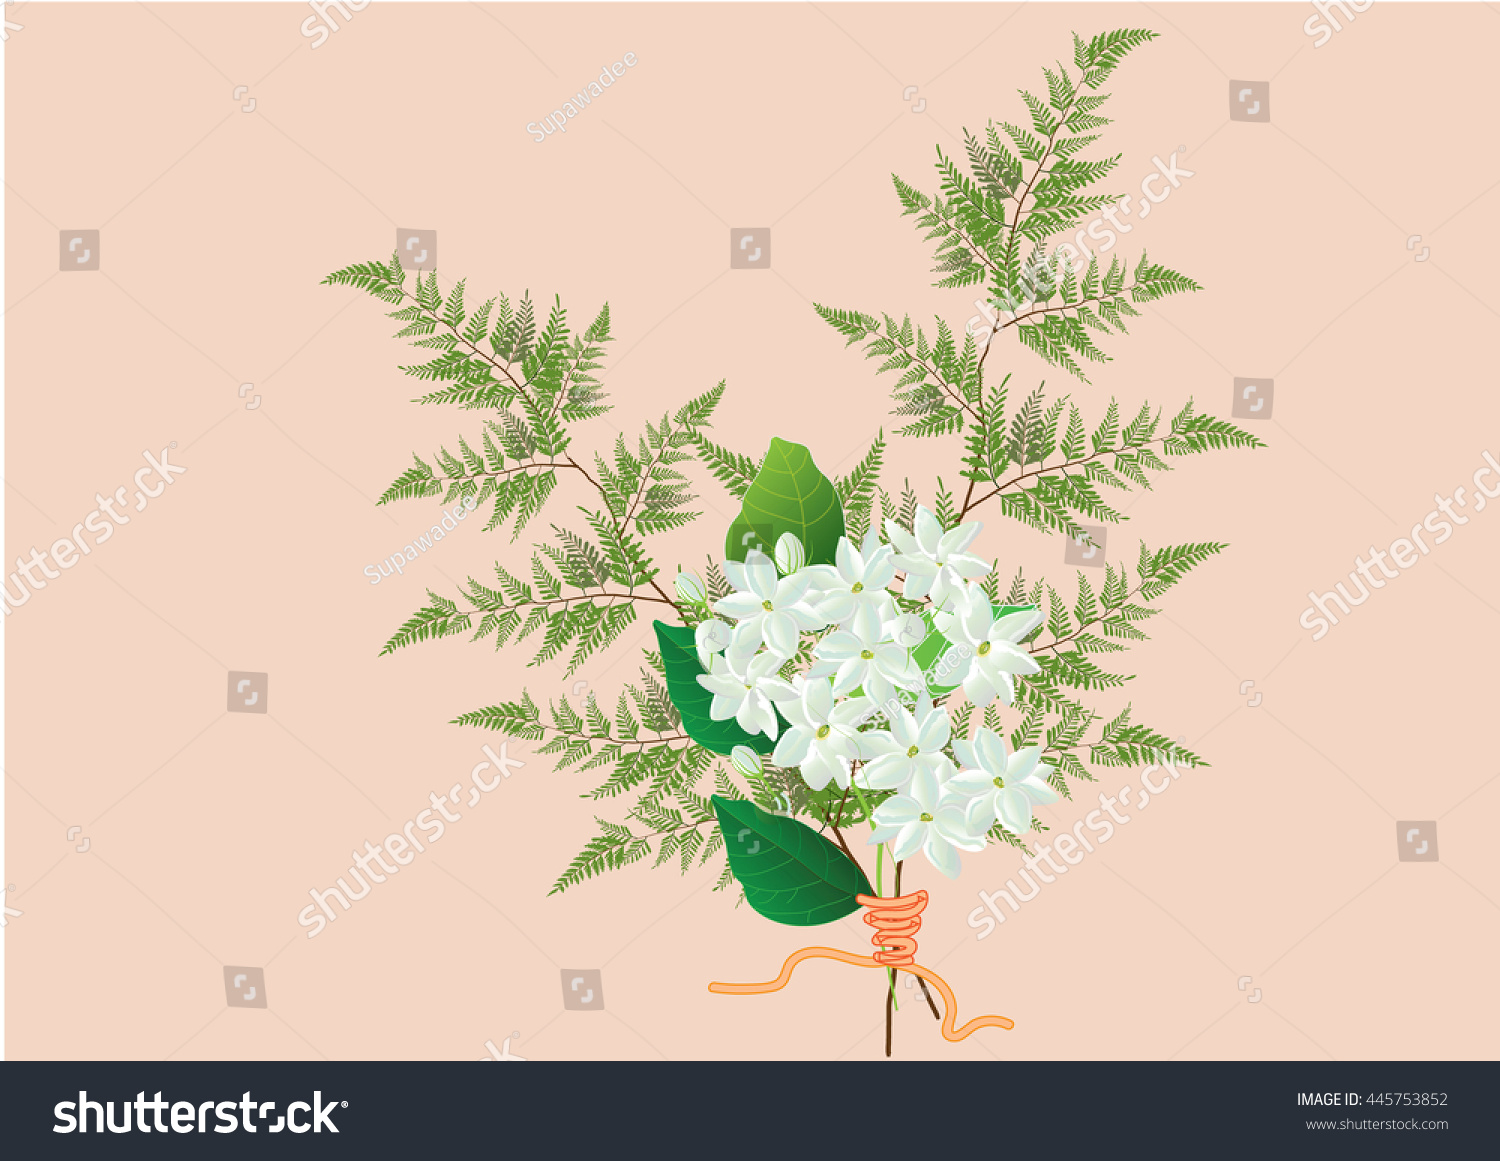 Jasmine flower bouquet white jasmine two stock vector 445753852 jasmine flower bouquet with white jasmine and two kind of ferns hand drawn vector illustration izmirmasajfo Image collections